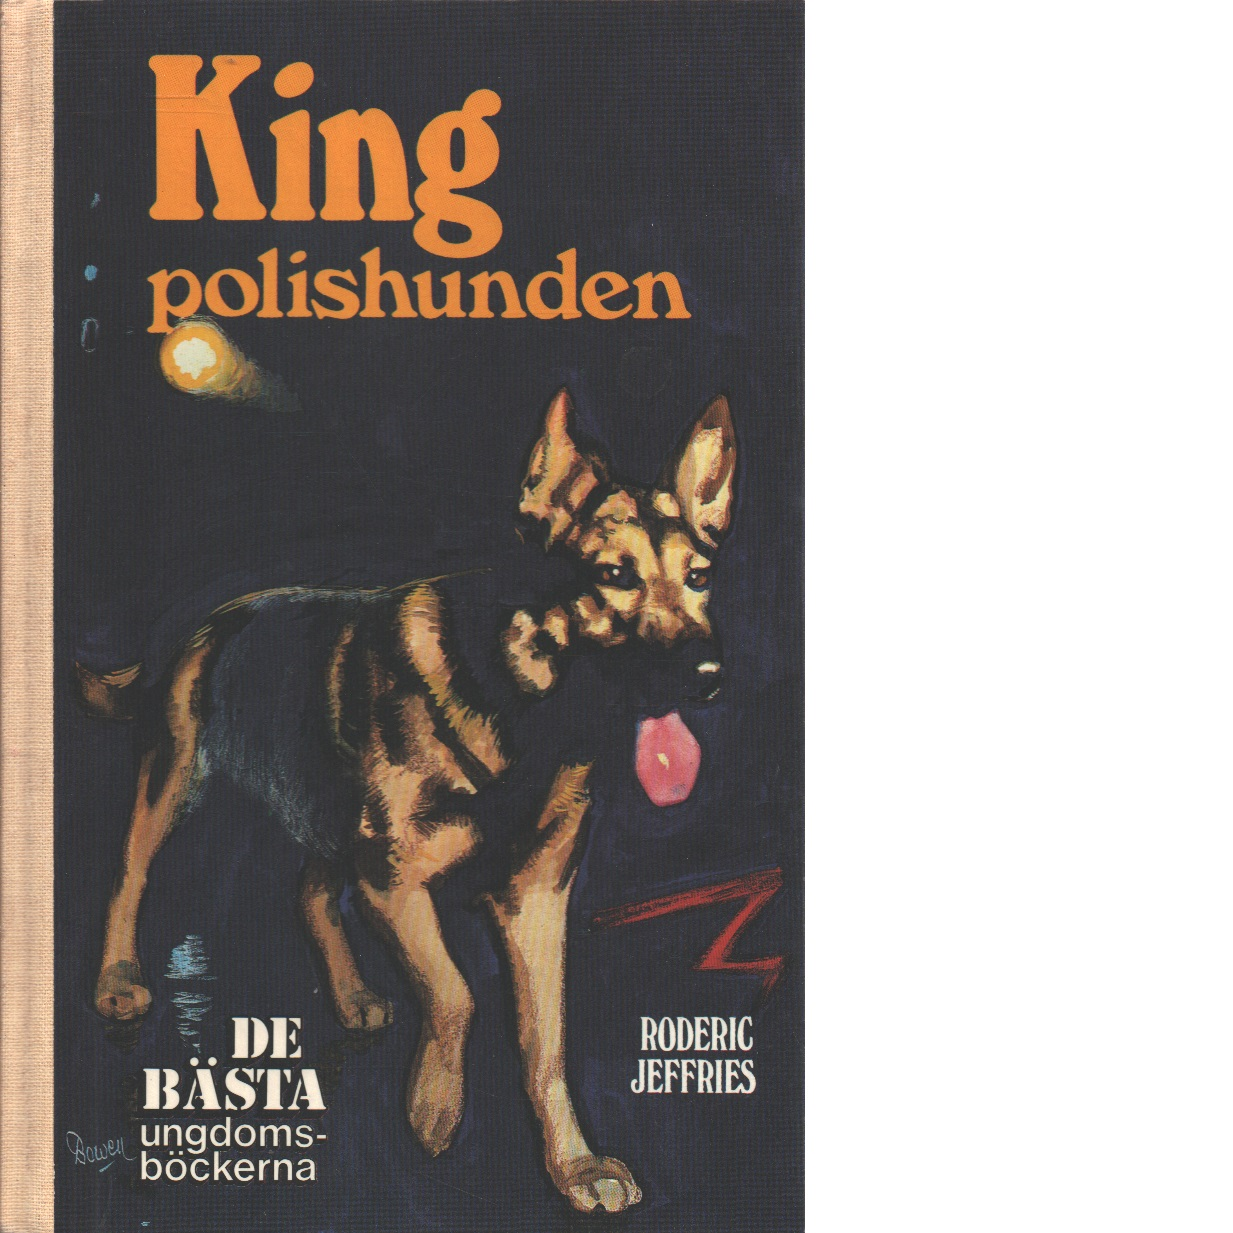 King, polishunden - Jeffries, Roderic